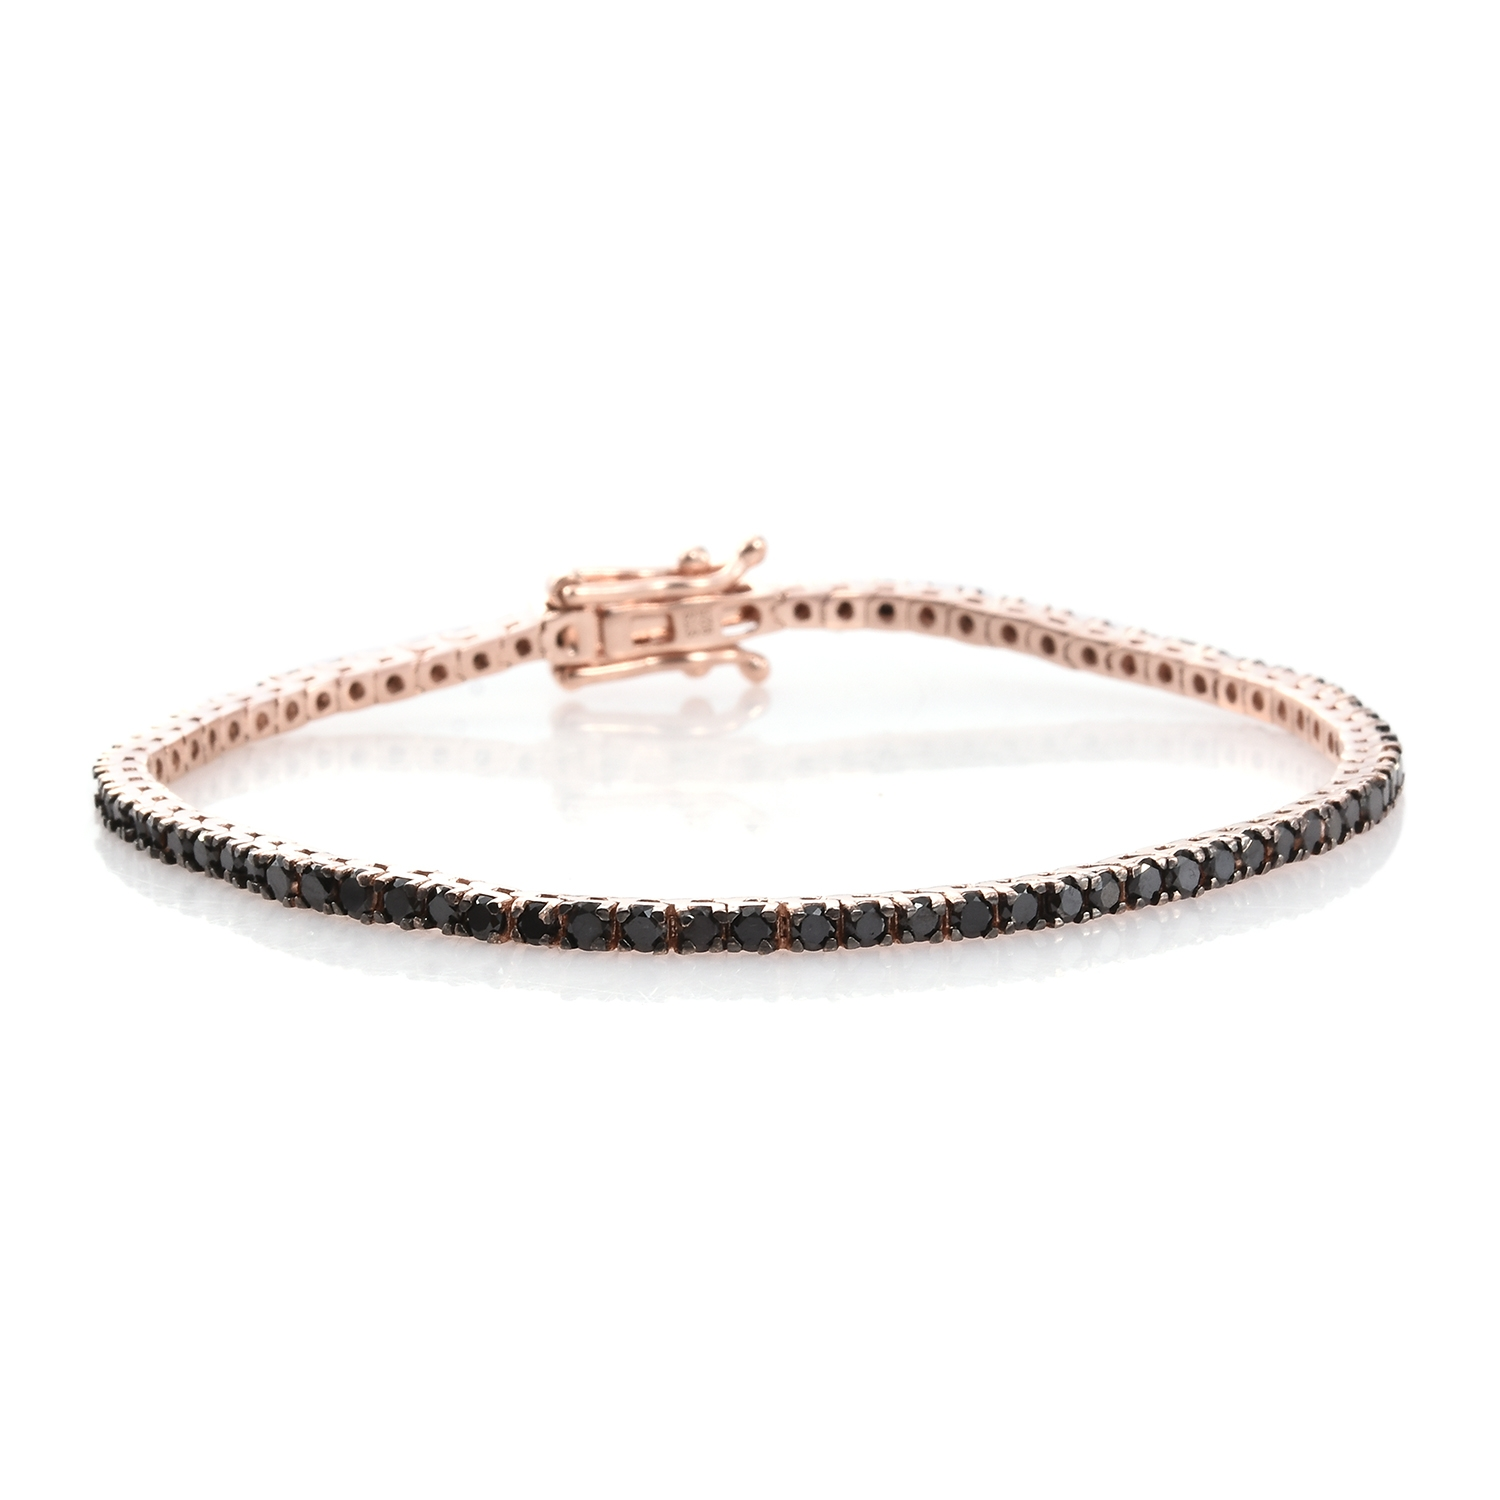 st stores online product store in black bracelet diamond jewelry dk at martin and gems best